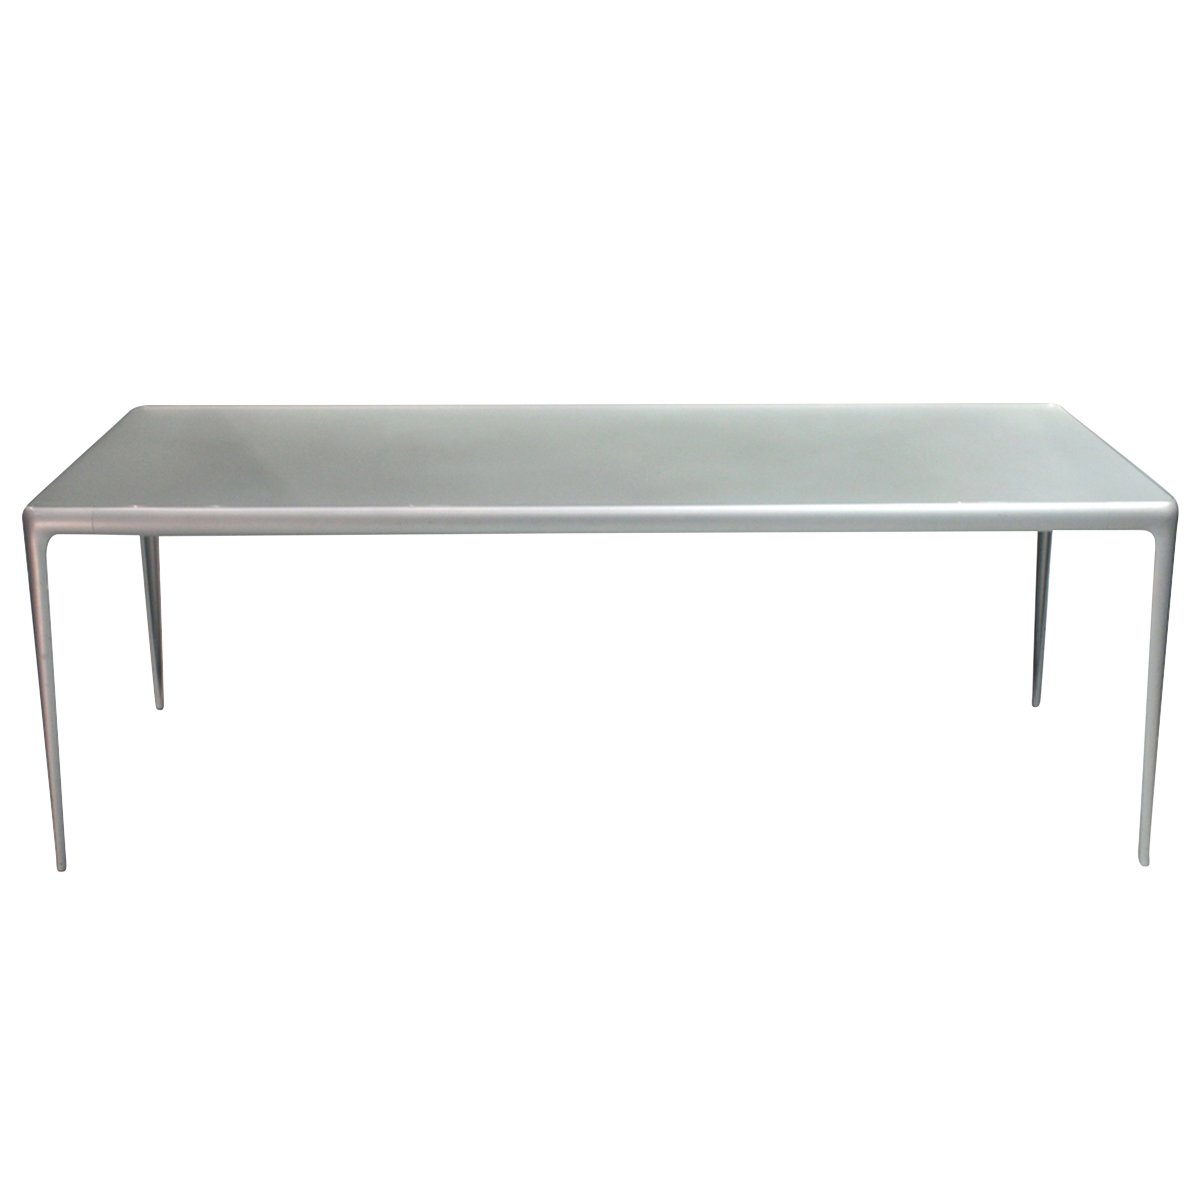 Vintage Flat Egg Dining Table By Philippe Starck For Driade